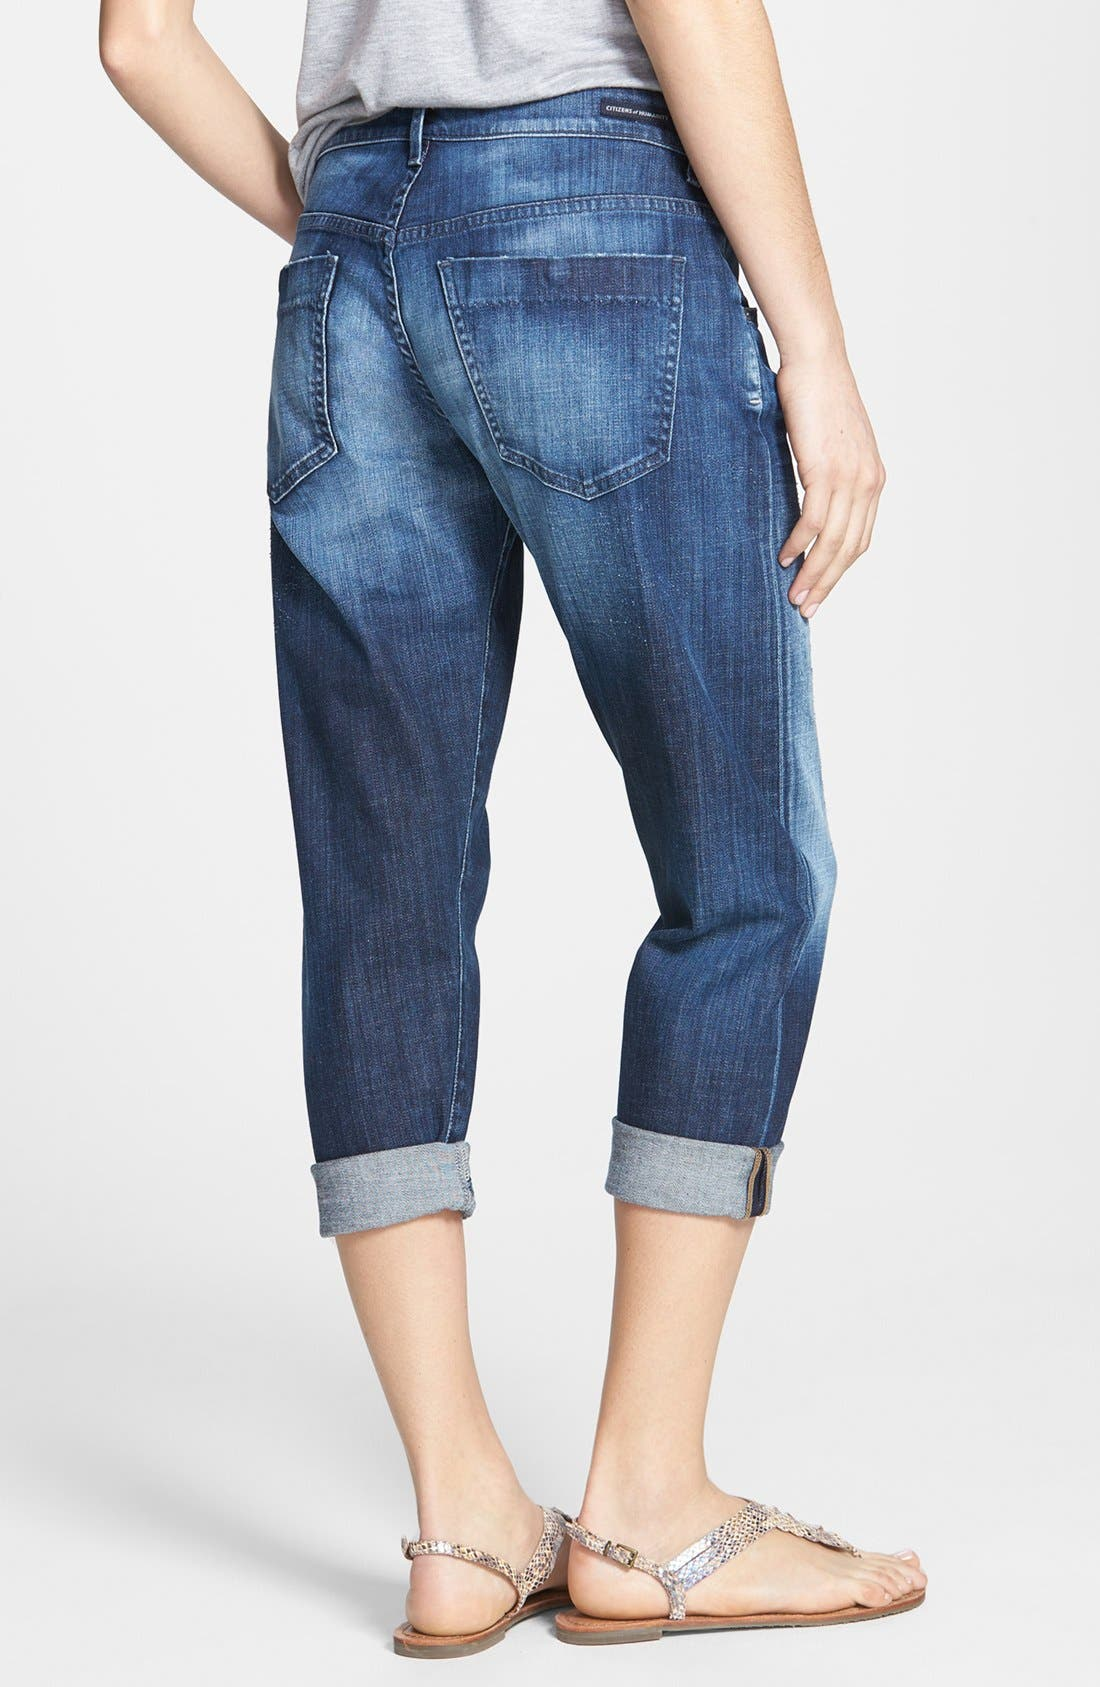 'Skyler' Crop Boyfriend Jeans,                             Alternate thumbnail 2, color,                             Vista